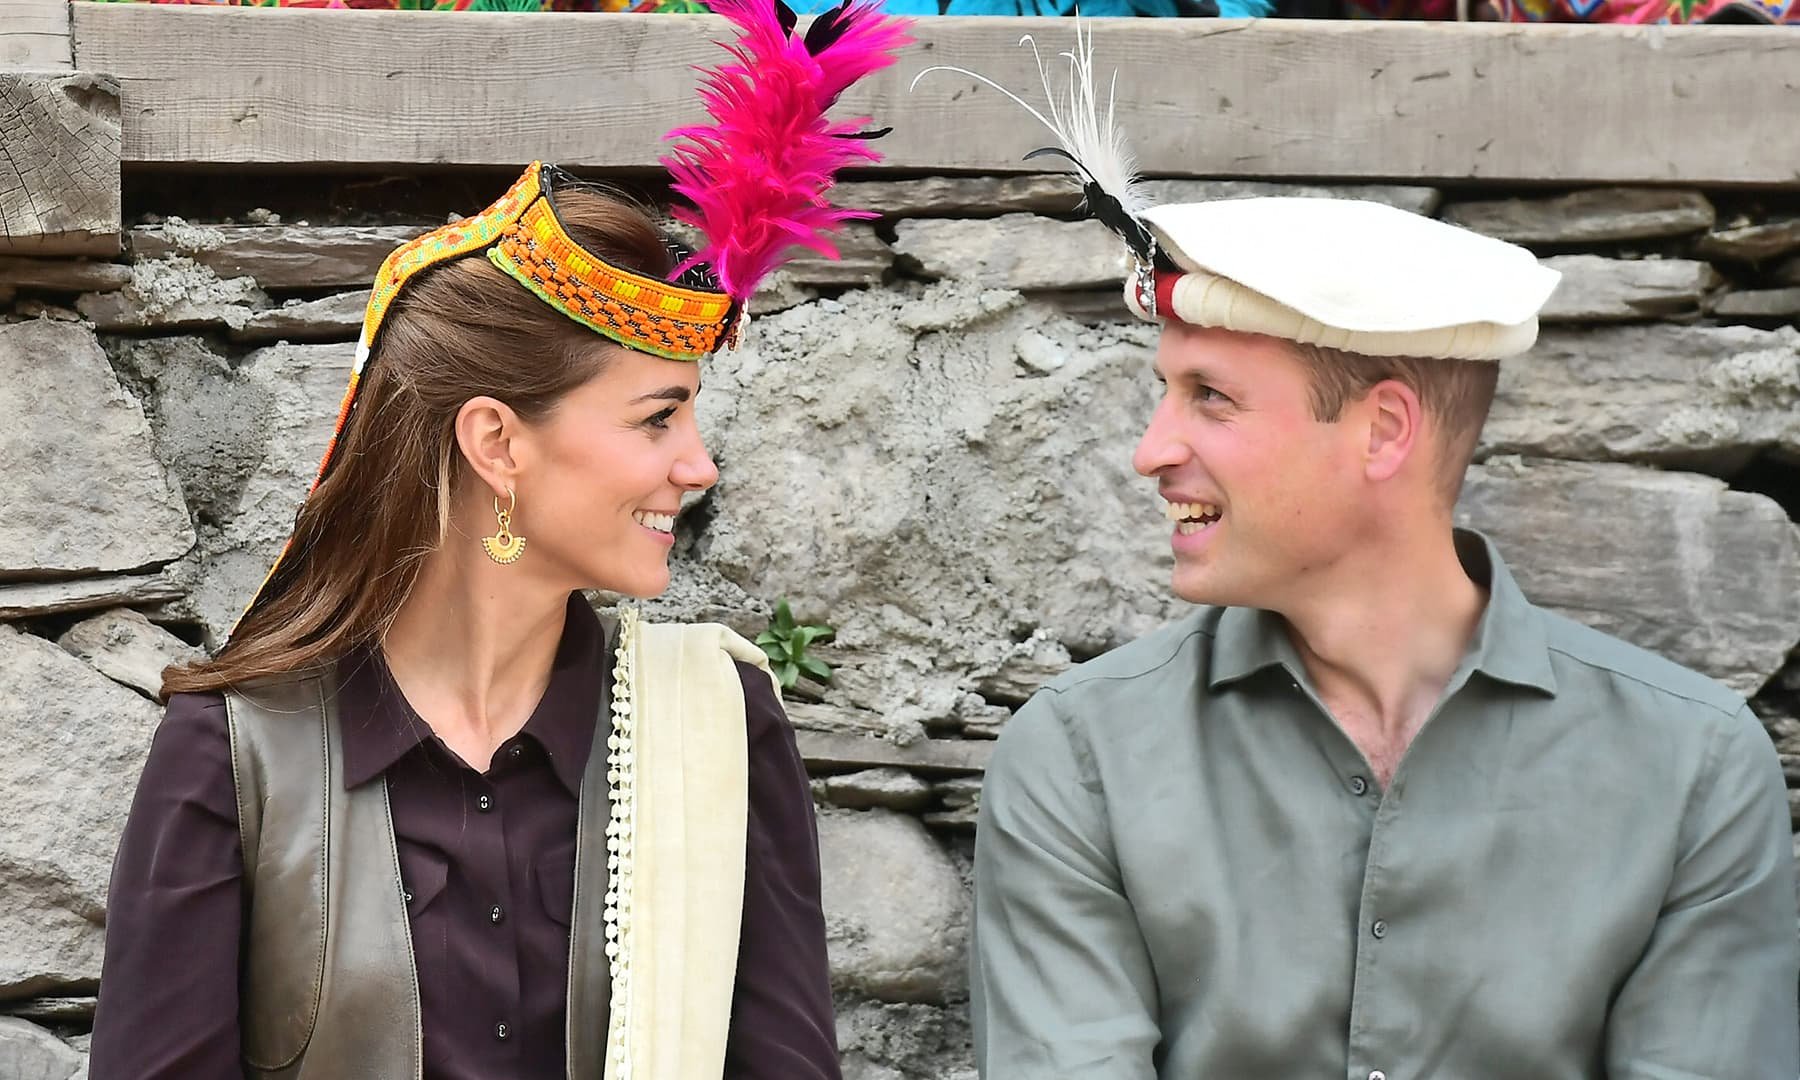 Prince William and Catherine, Duchess of Cambridge look at each other while visiting a settlement of the Kalash people in Chitral, October 16. — Reuters